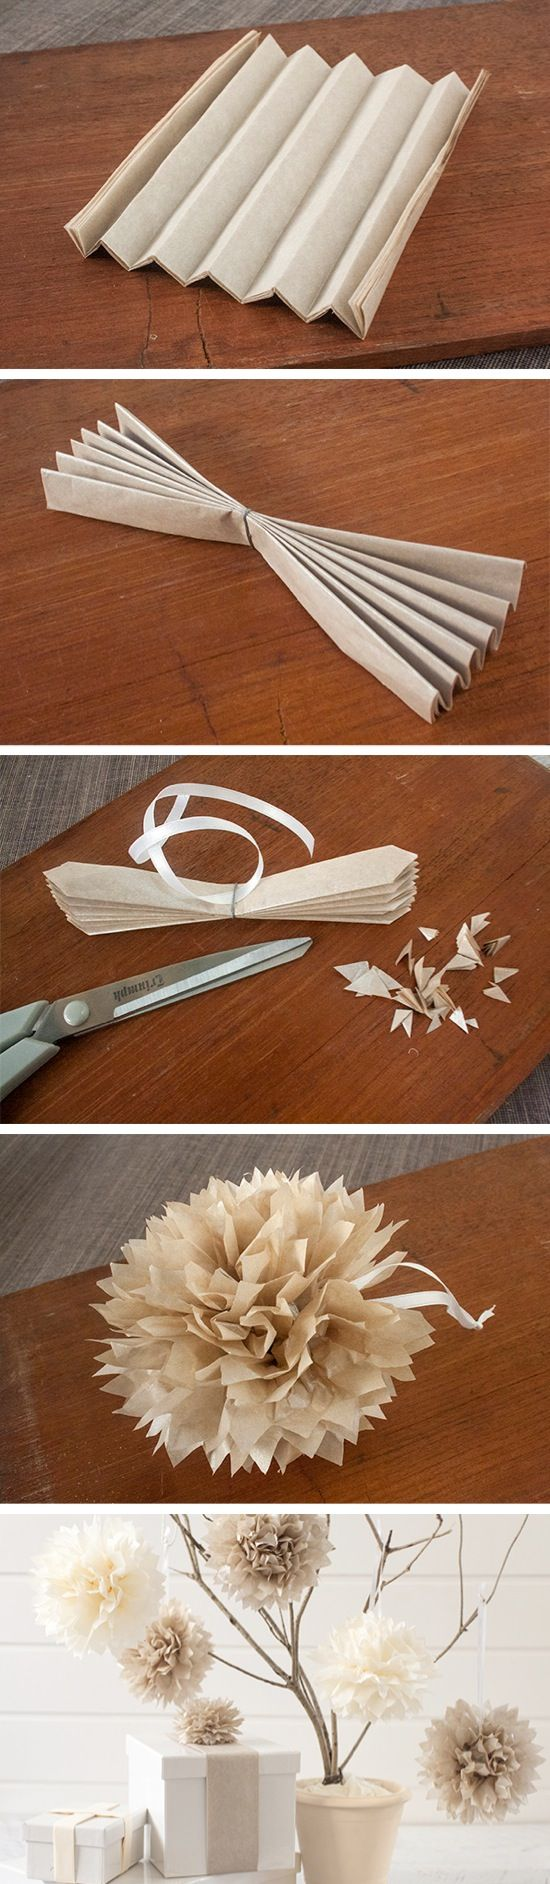 DIY-Tissue-Paper-Pom-Poms-Craft-By-Photo